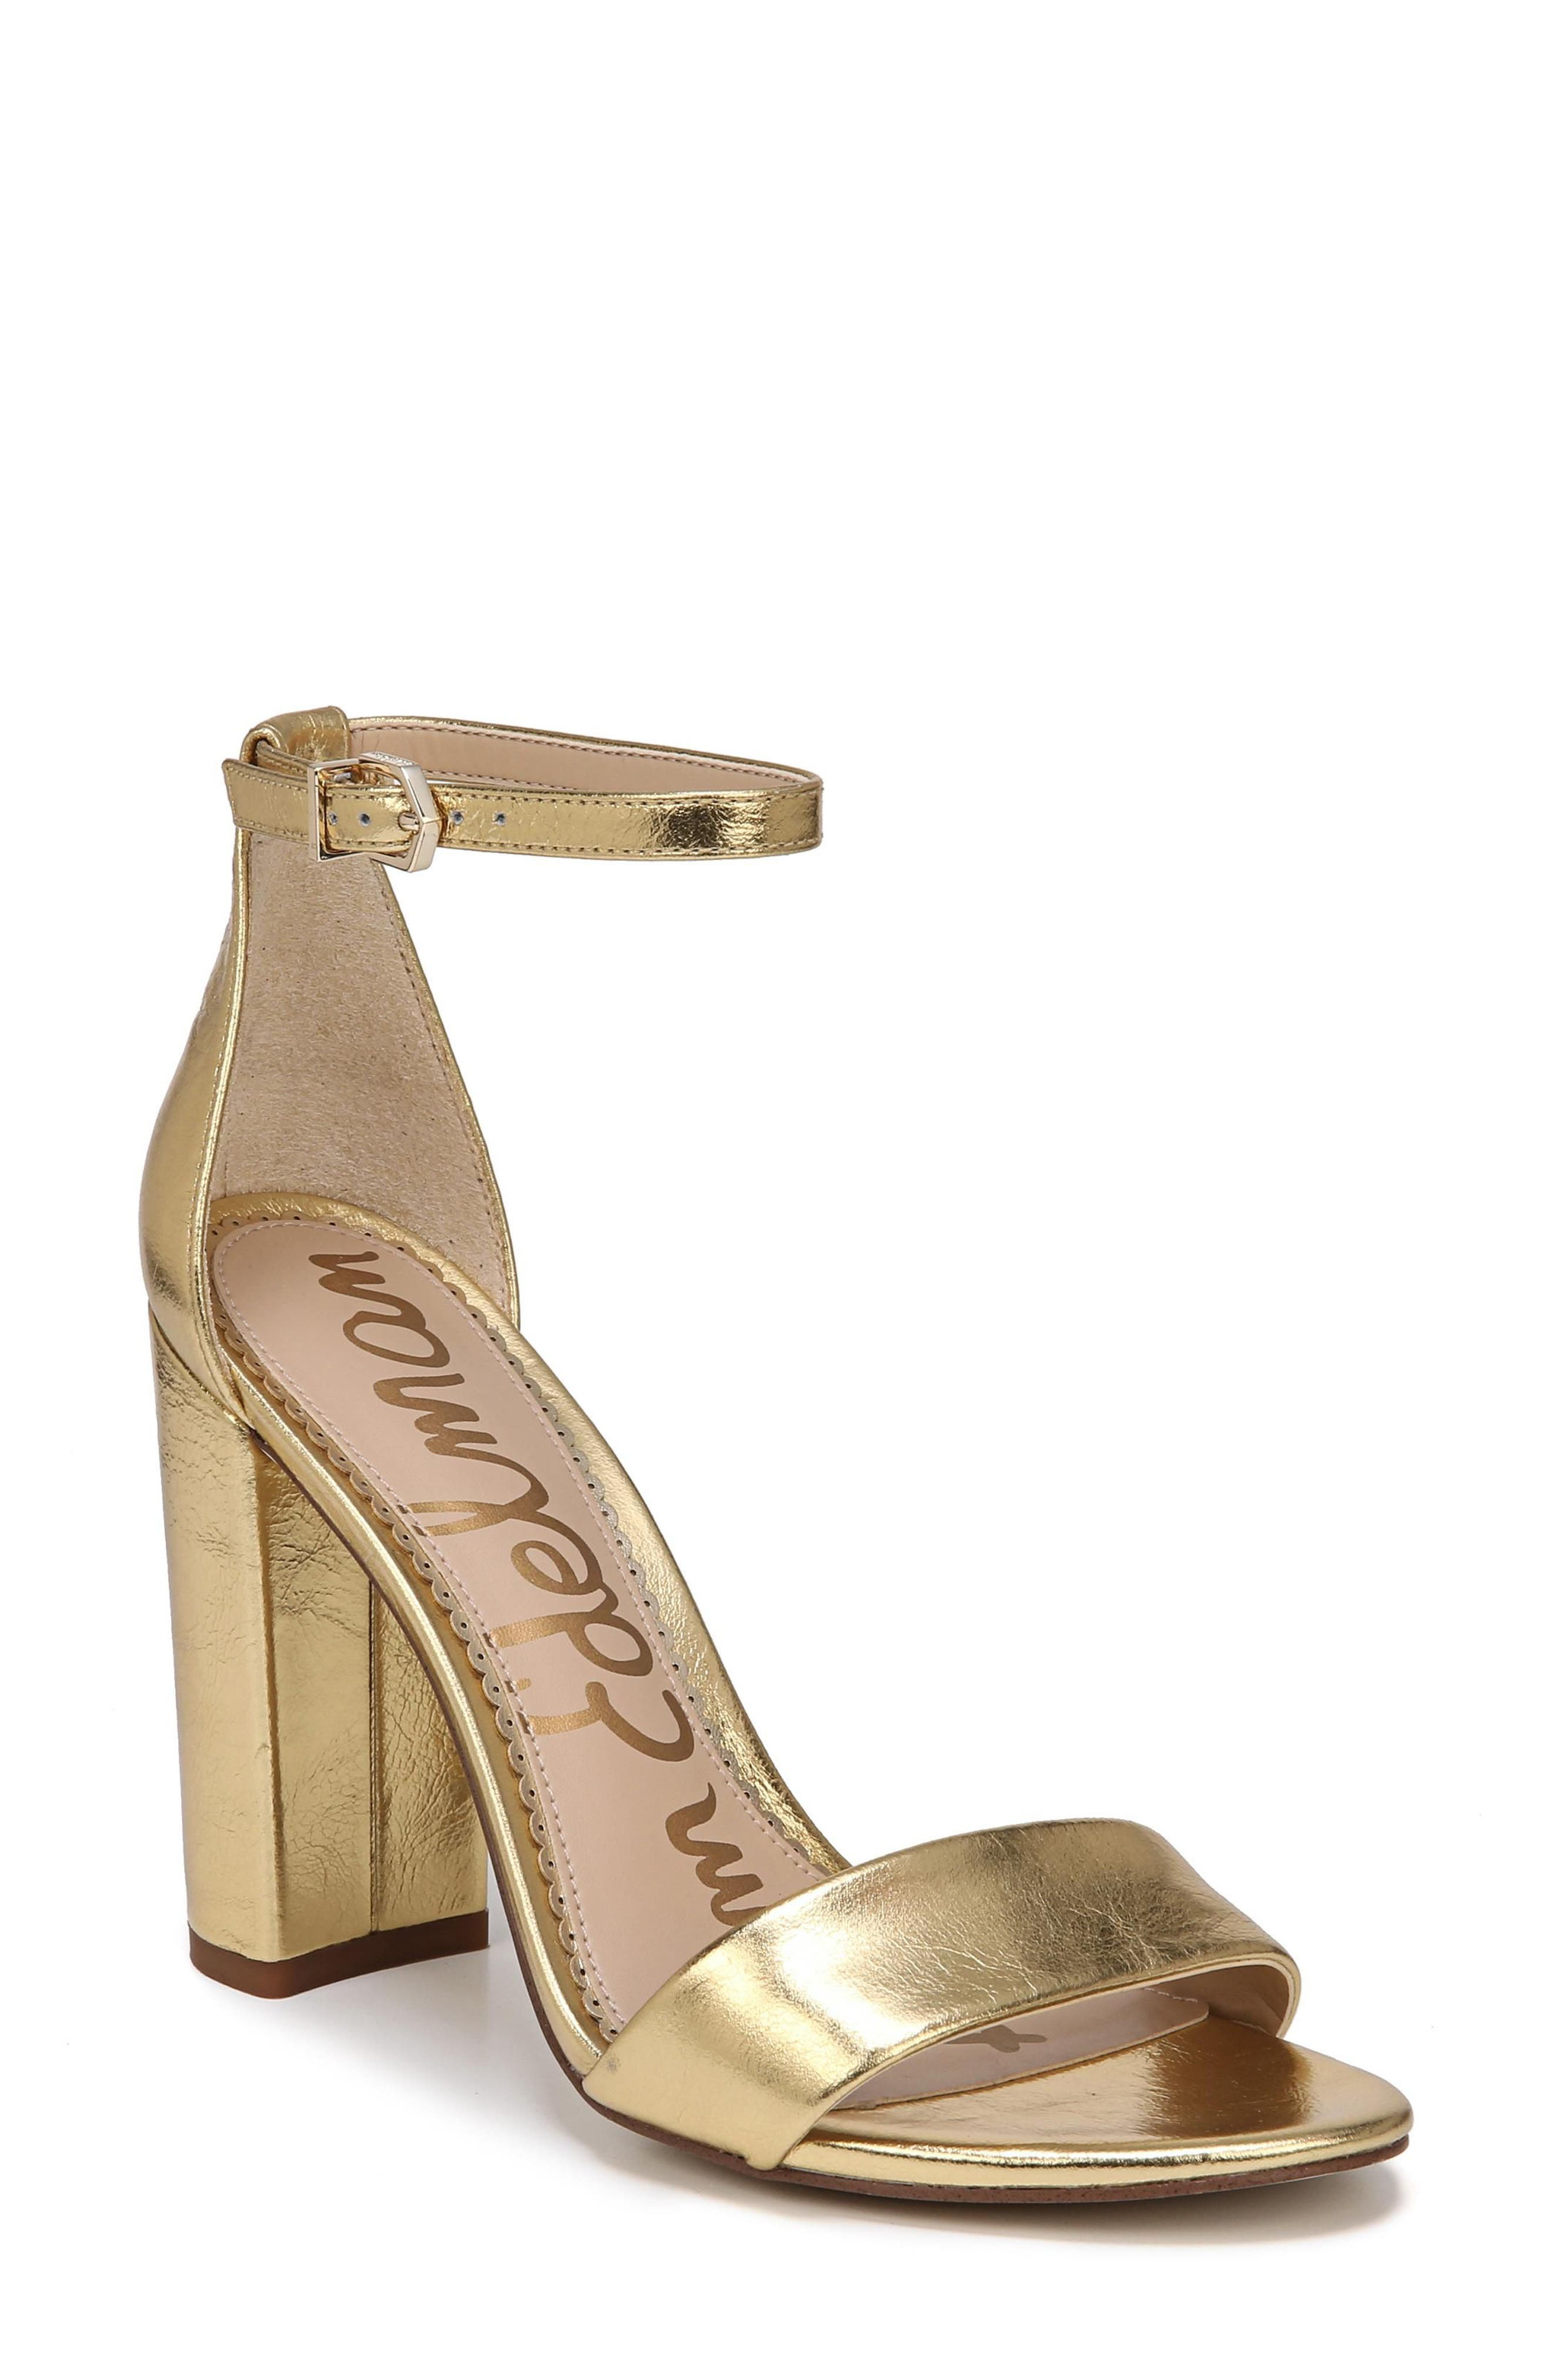 Yaro Ankle Strap Sandal,                             Main thumbnail 1, color,                             Bright Gold Leather